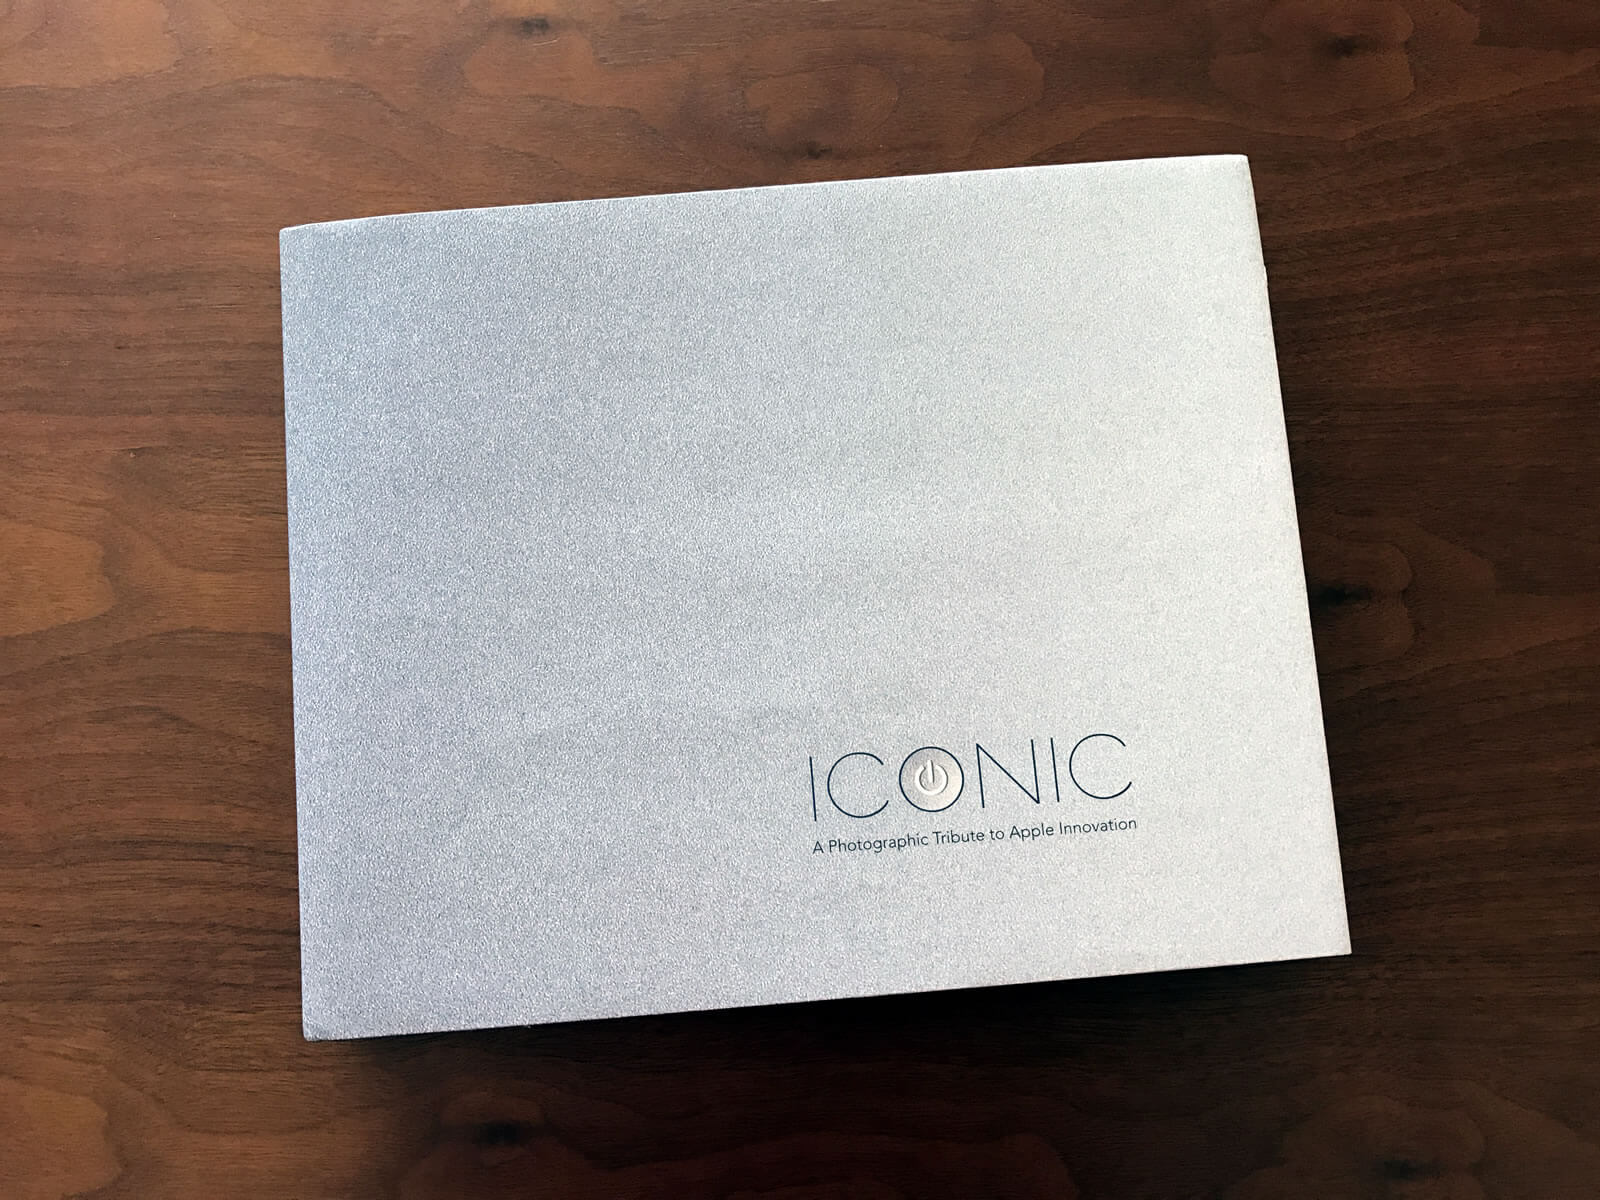 Apple 写真集 「Iconic: A Photographic Tribute to Apple Innovation」